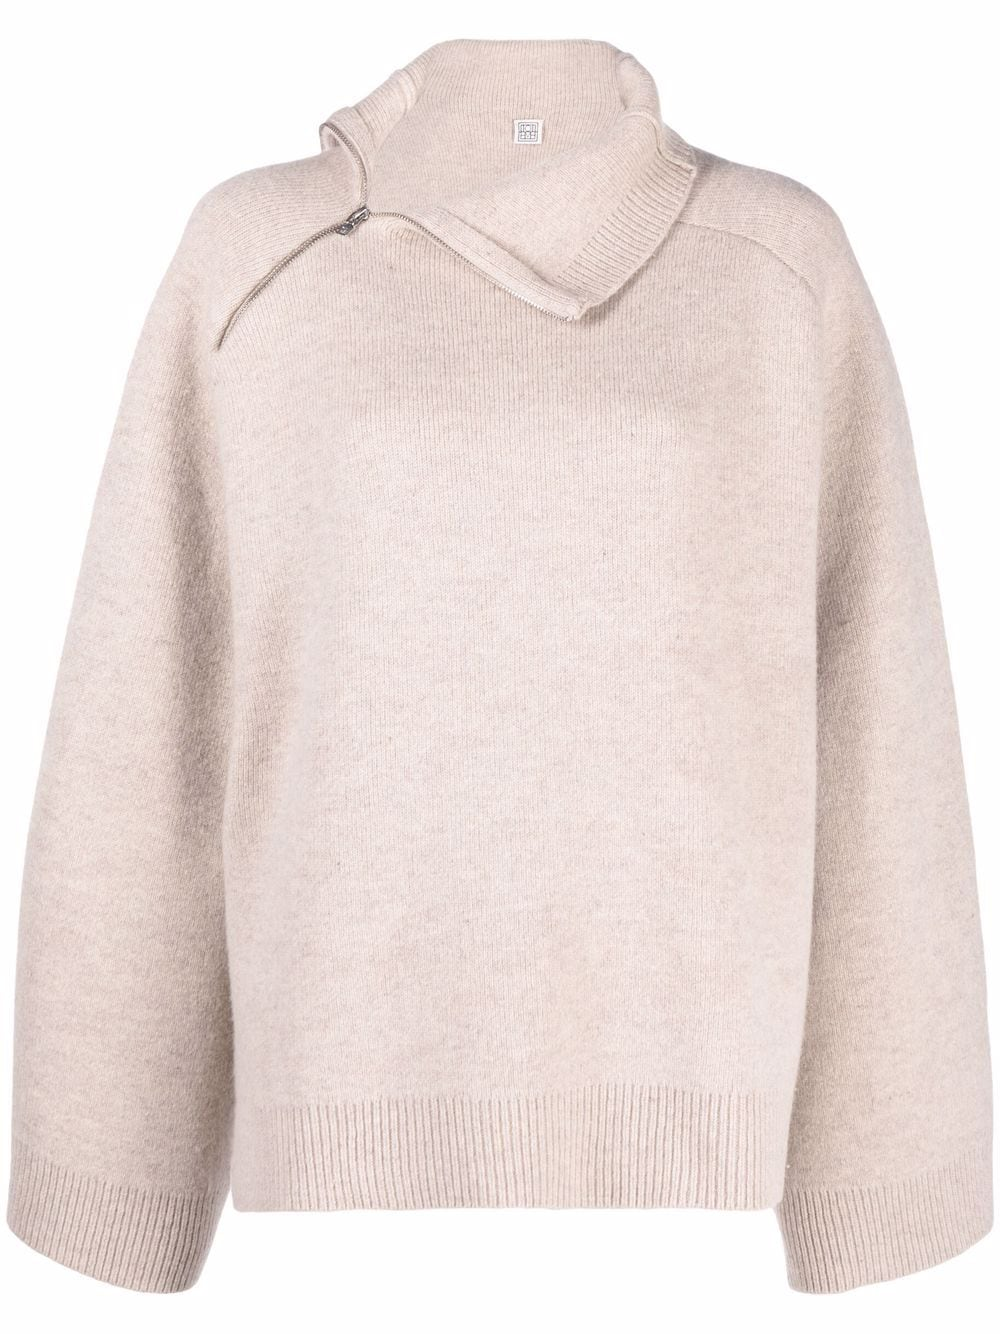 <p class='small-title'>TOTEME</p>Asymmetric Knitted Jumper